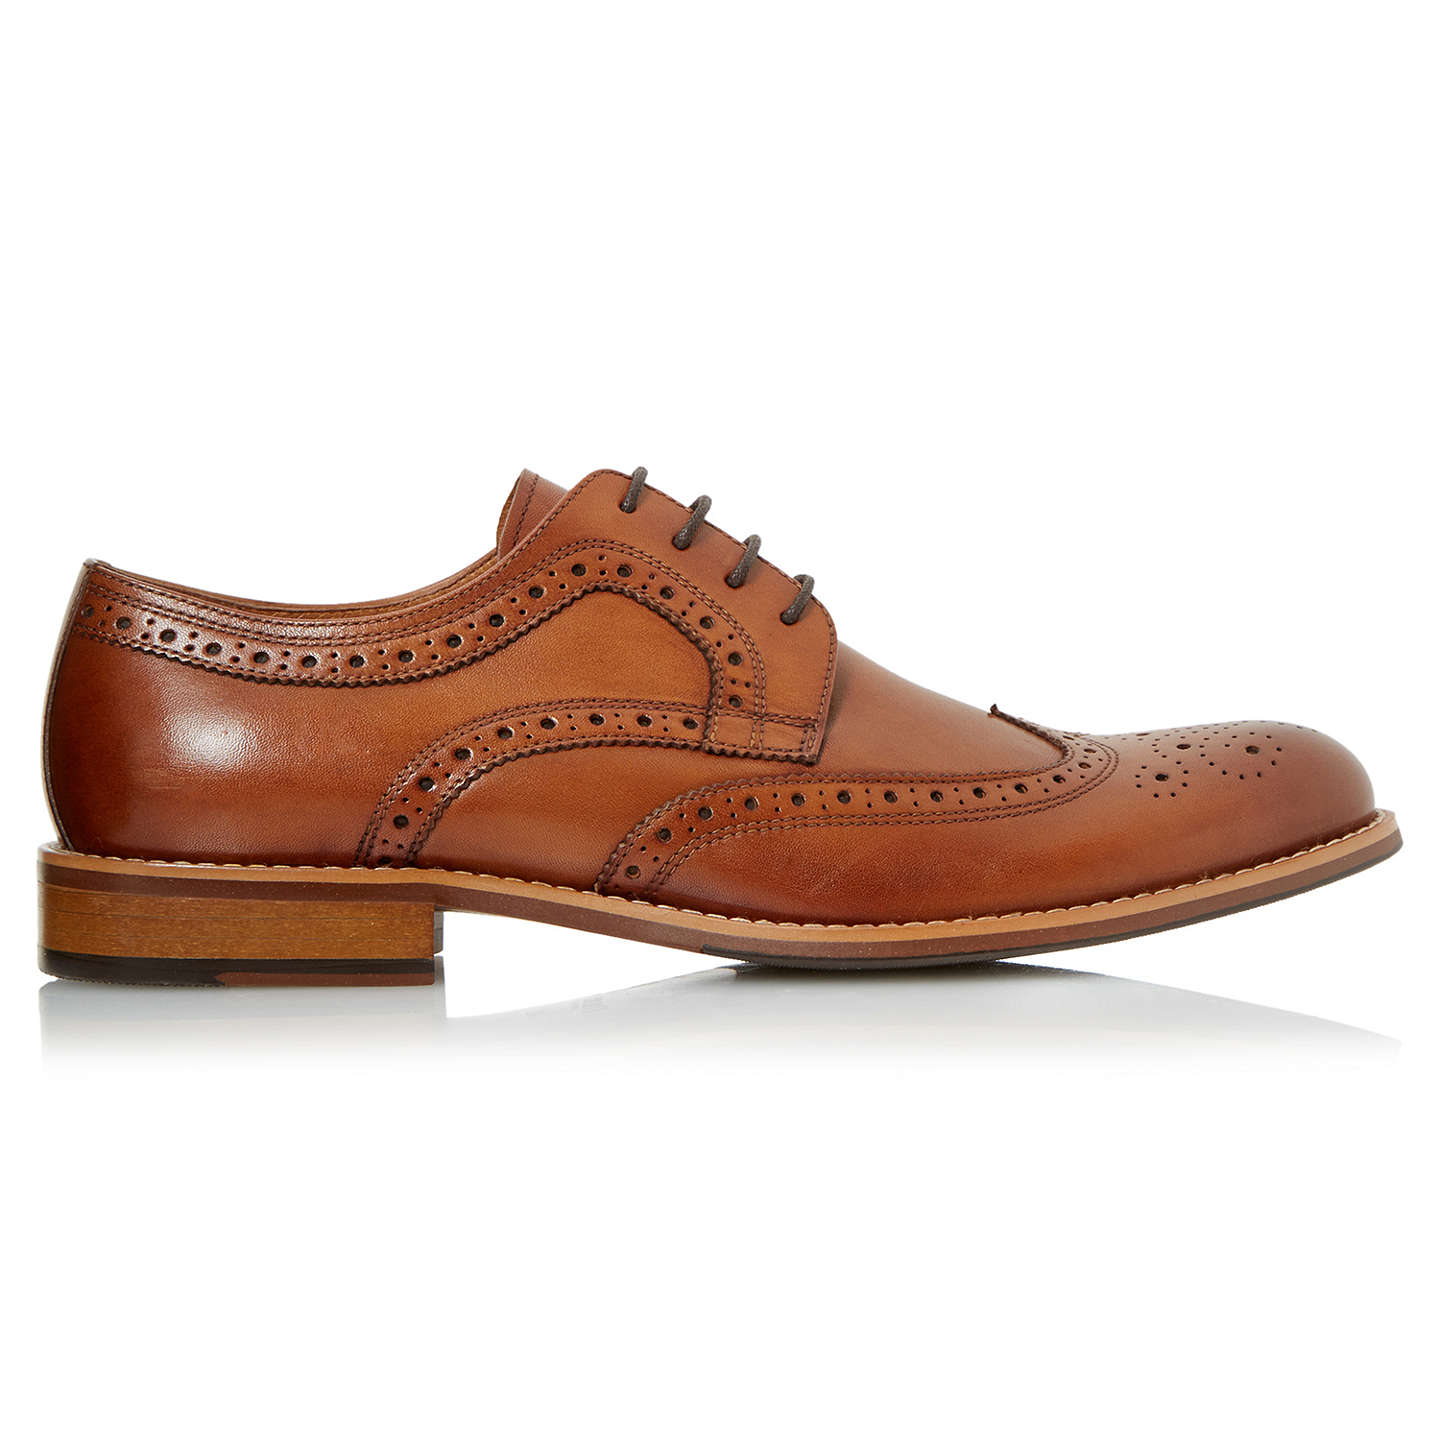 BuyDune Radcliffe Derby Lace-Up Brogue Shoes, Tan, 6 Online at johnlewis.